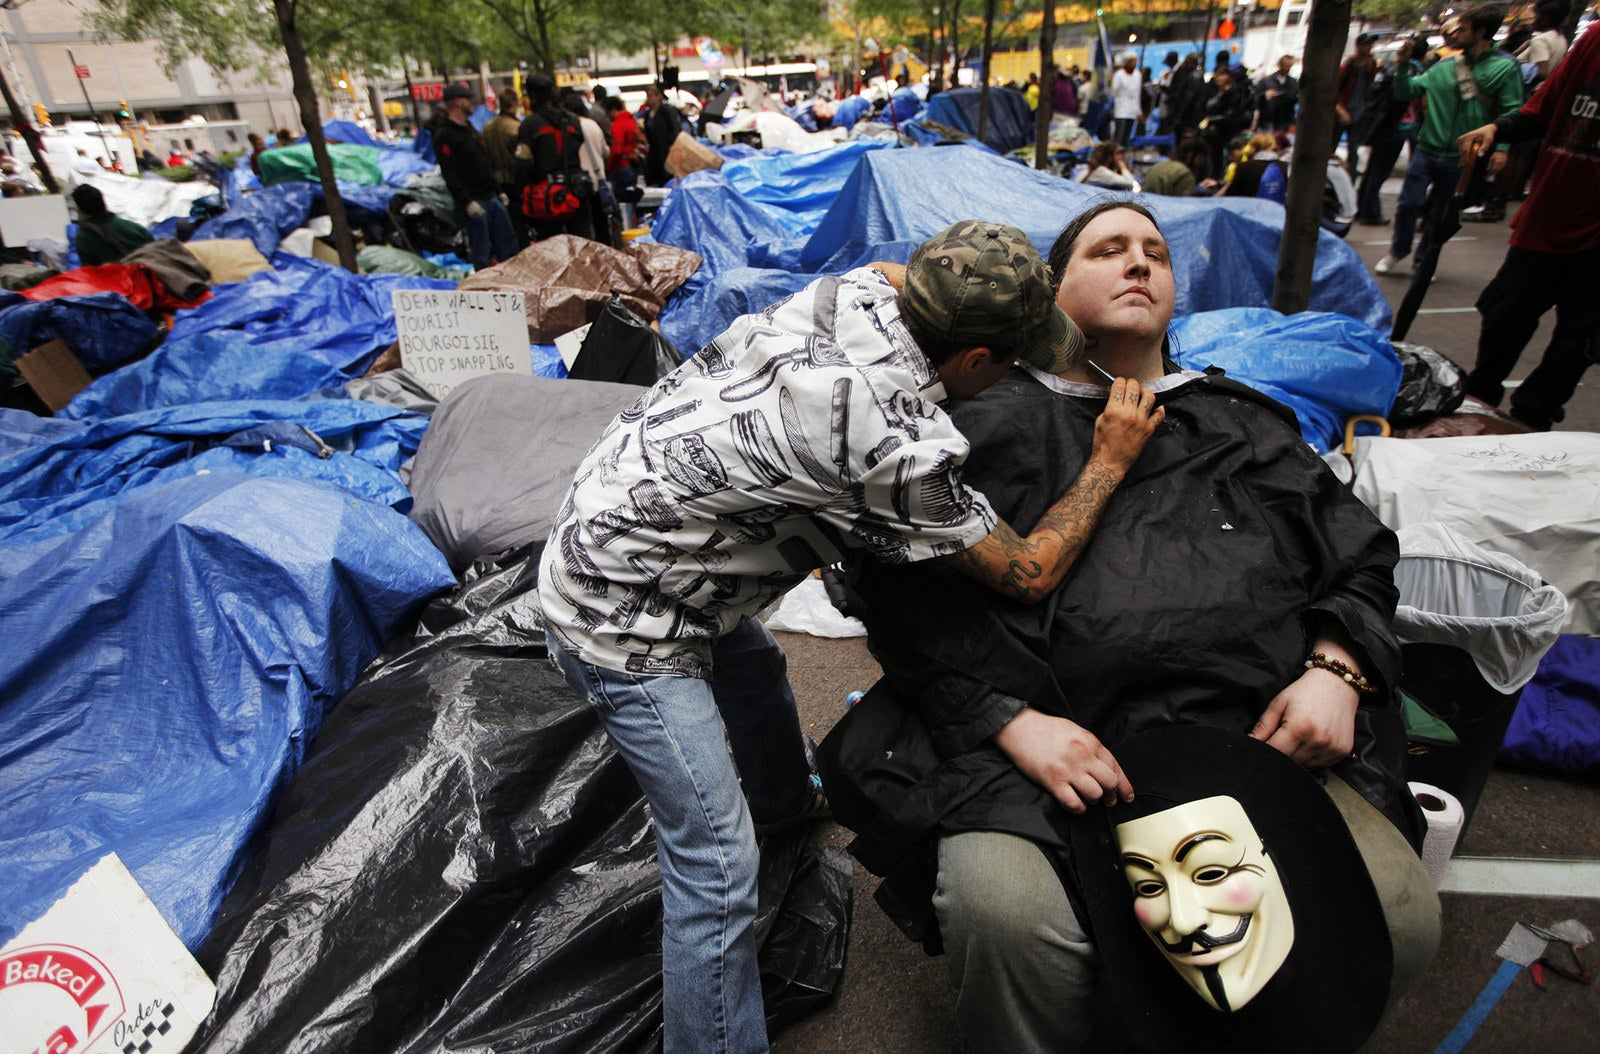 A member of the Occupy Wall Street movement gets a shave in Zuccotti Park on Oct. 12, 2011.